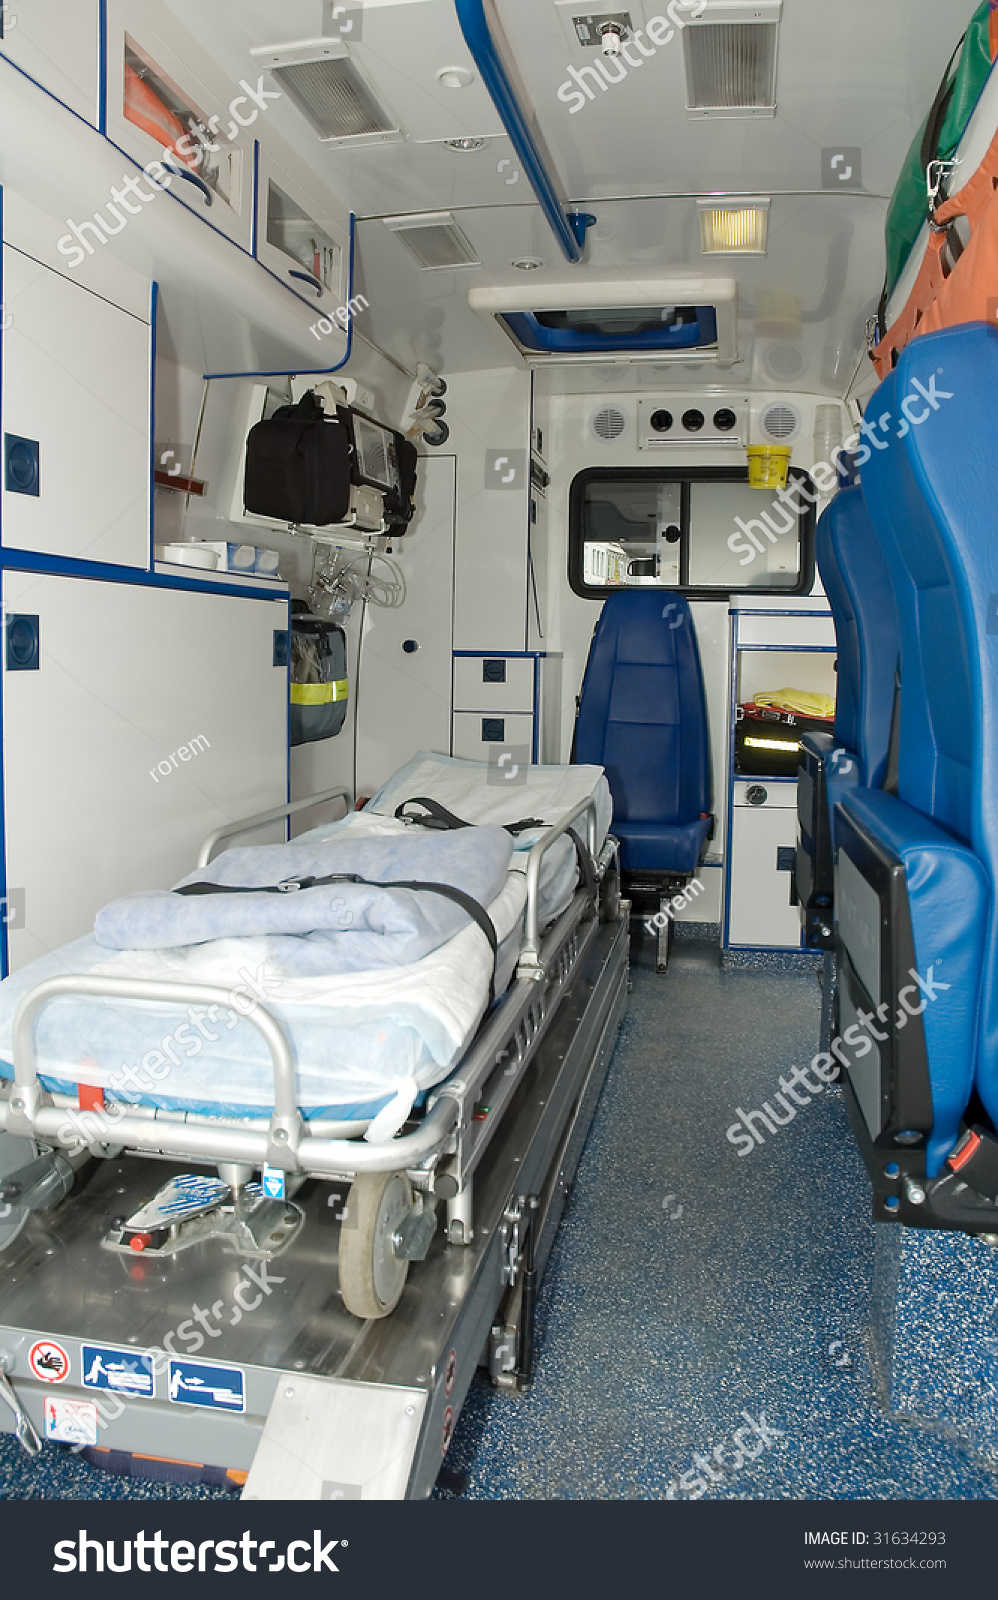 ambulance car interior no people stock photo 31634293 shutterstock. Black Bedroom Furniture Sets. Home Design Ideas